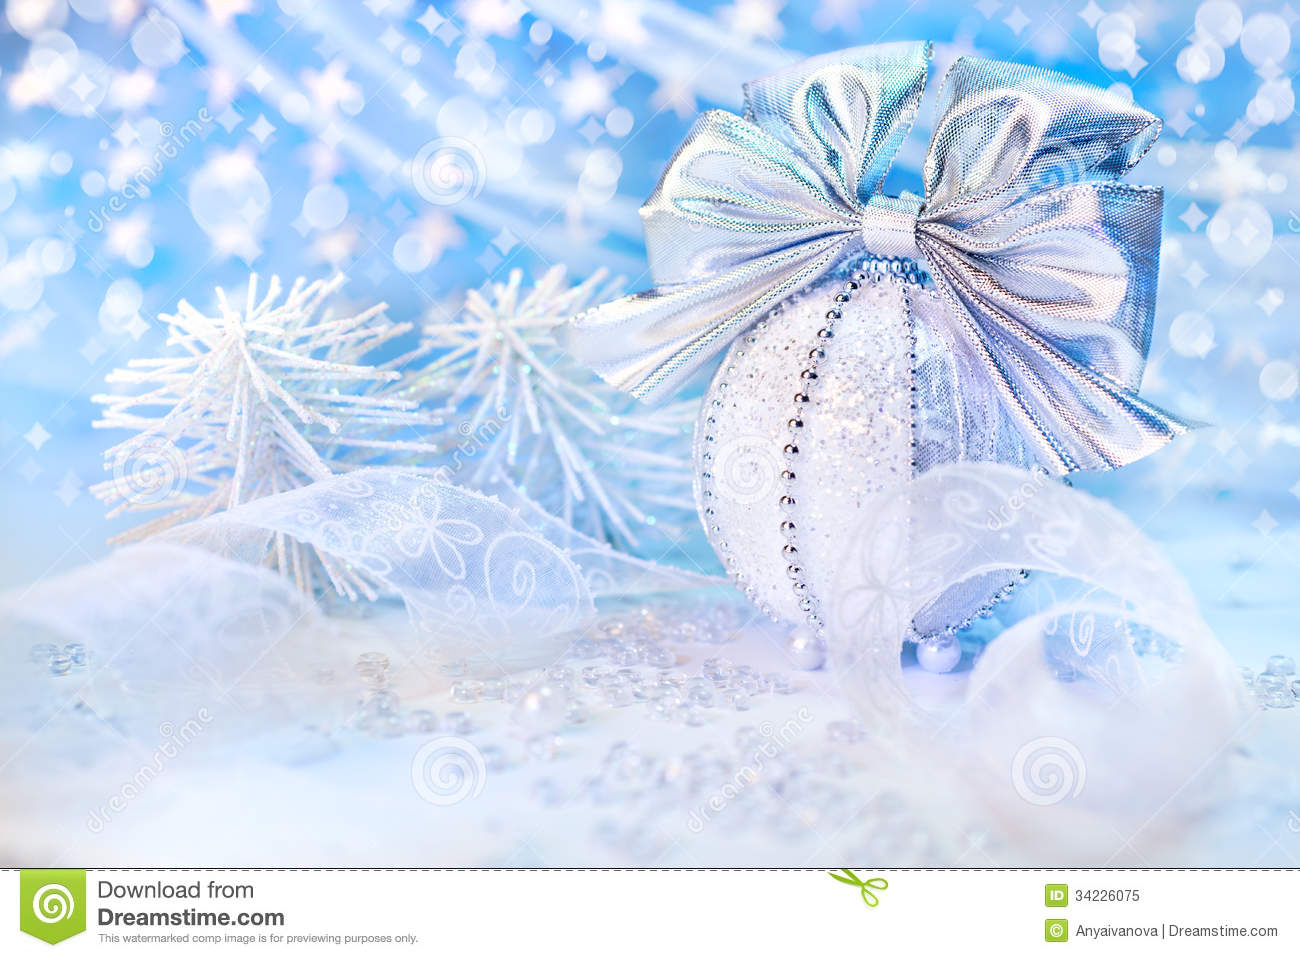 White and silver christmas decorations on abstract winter background